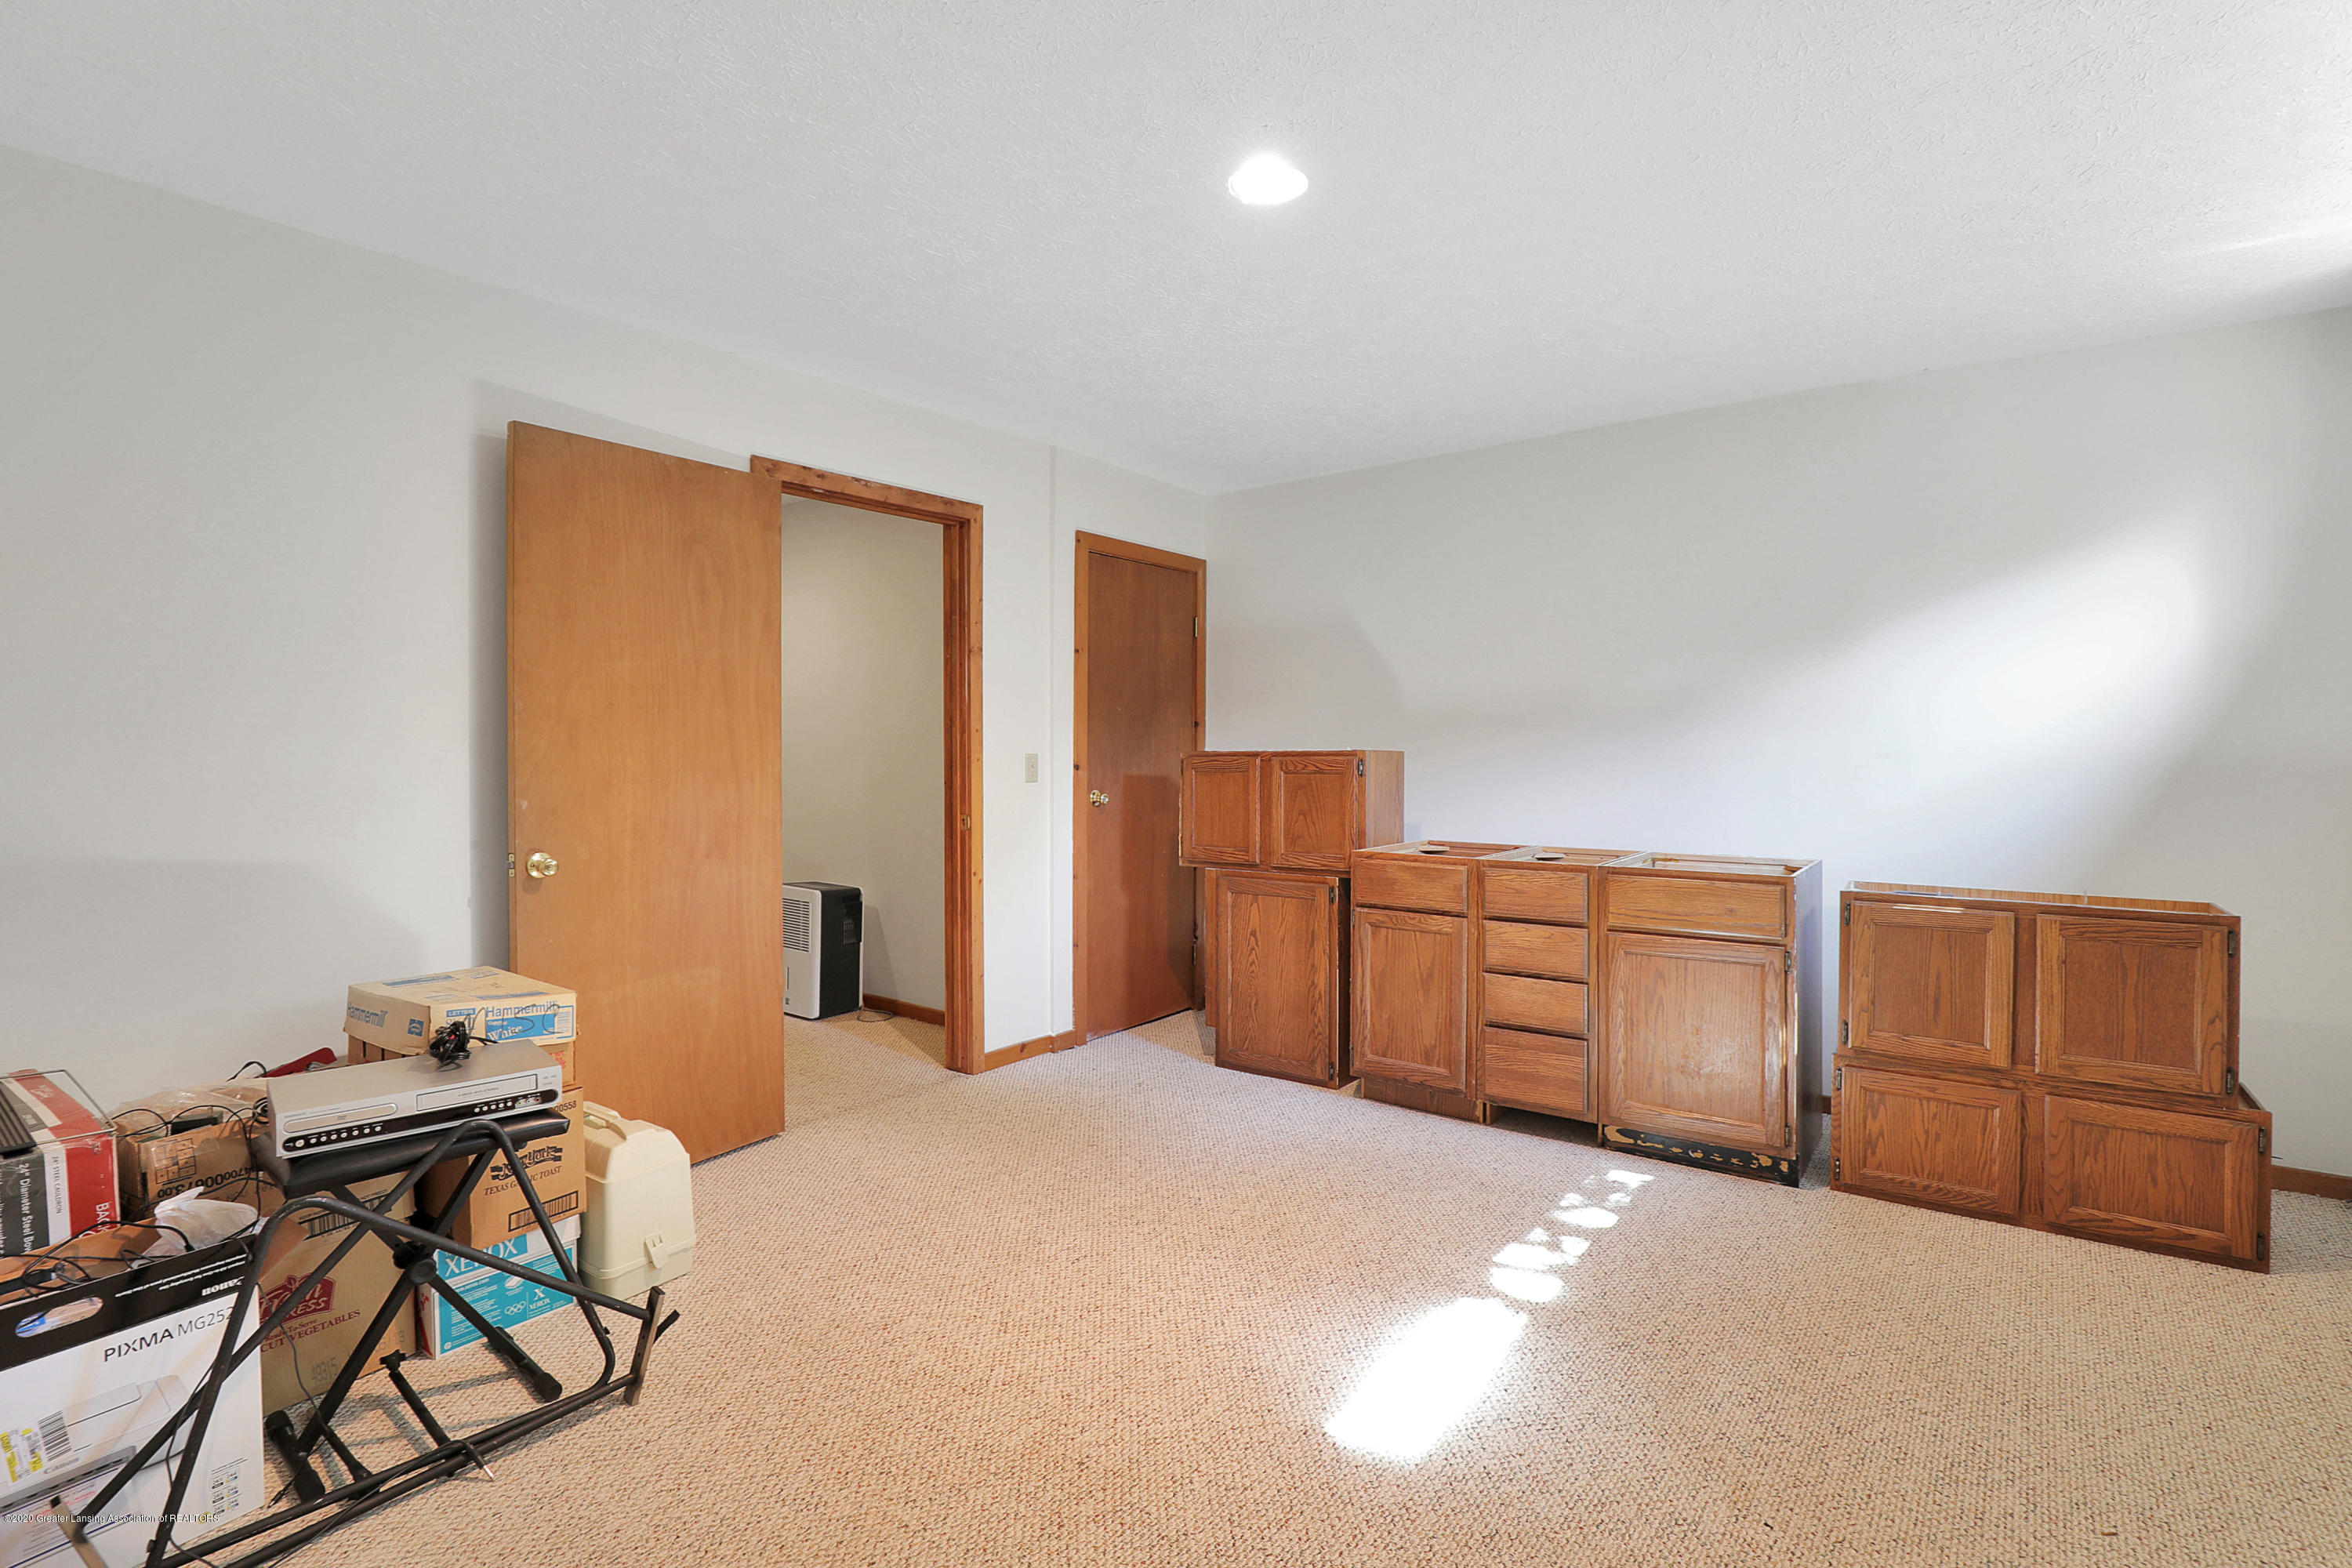 802 Randy Ln - Craft room/Office in lower level - 22